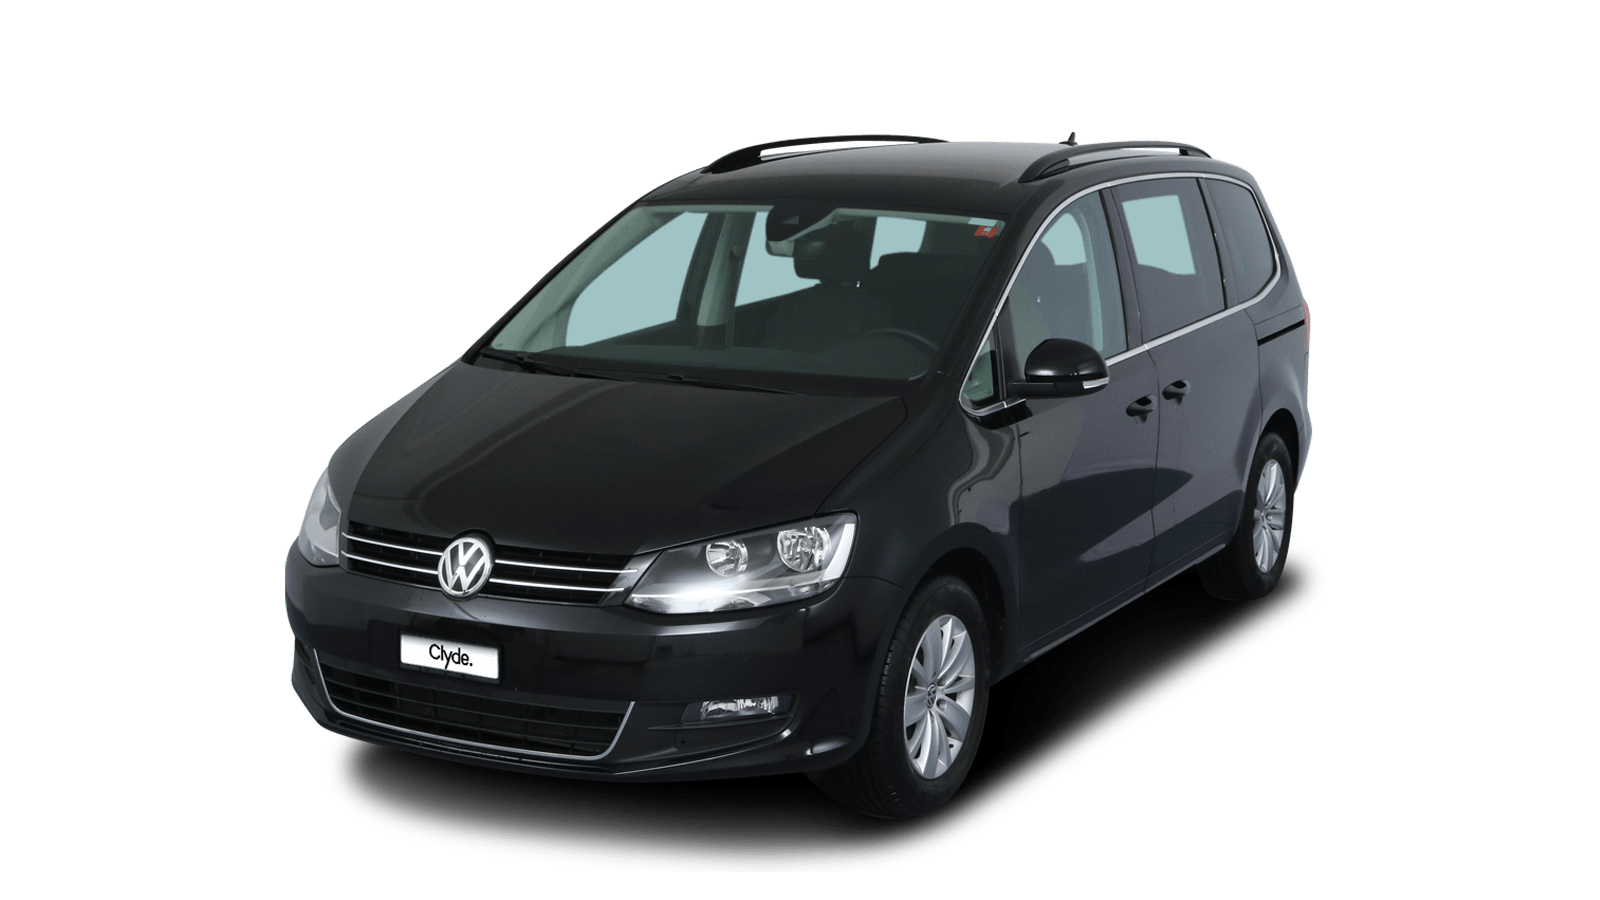 VW Sharan Schwarz front - Clyde Auto-Abo